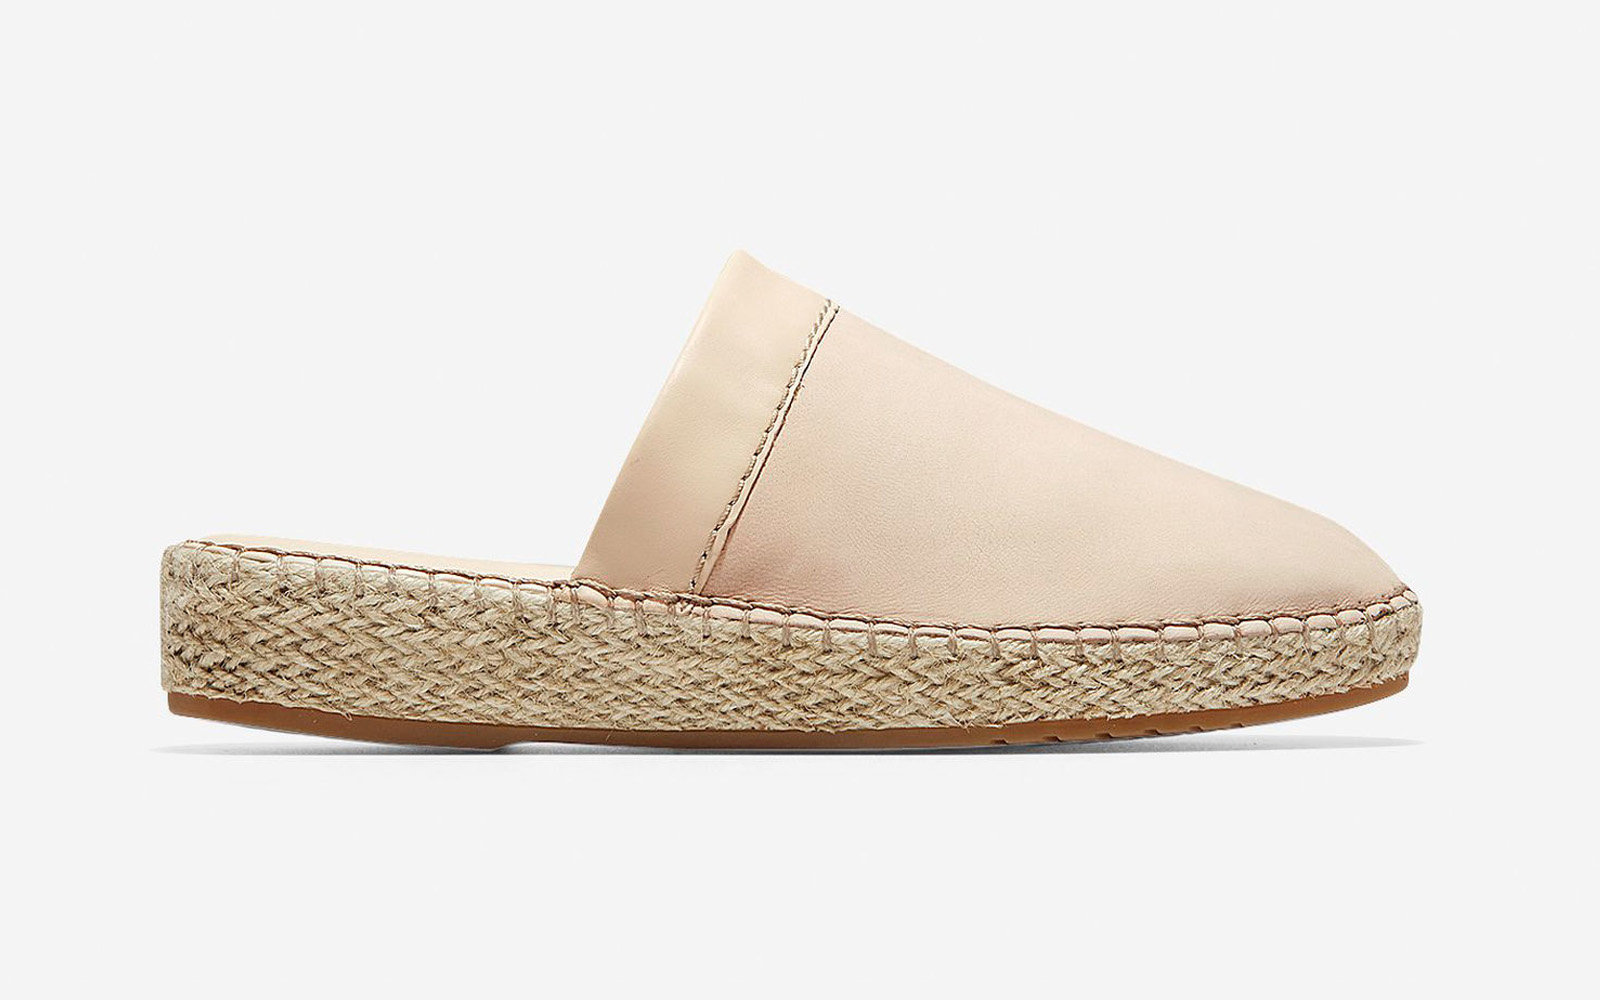 Cloudfeel Espadrille Slide in Brazilian Sand